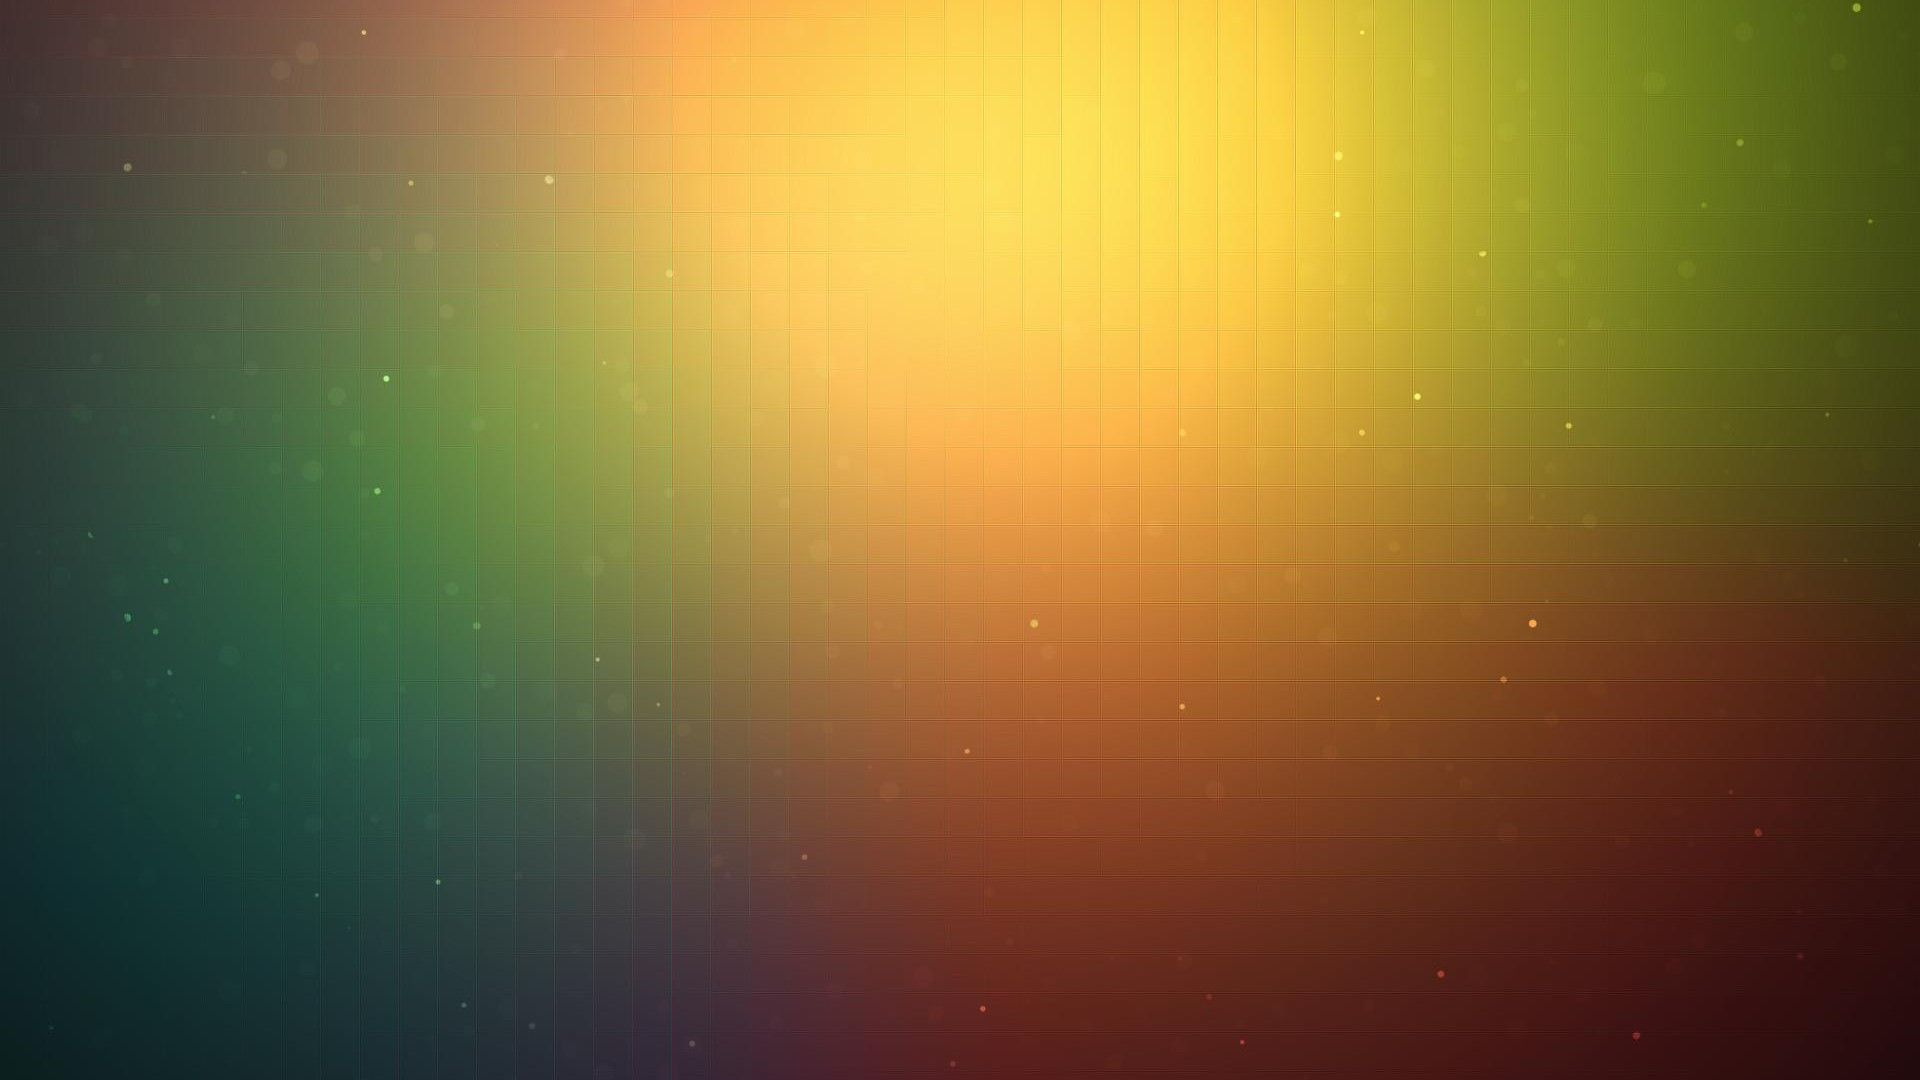 Simple Hd Wallpapers Top Free Simple Hd Backgrounds